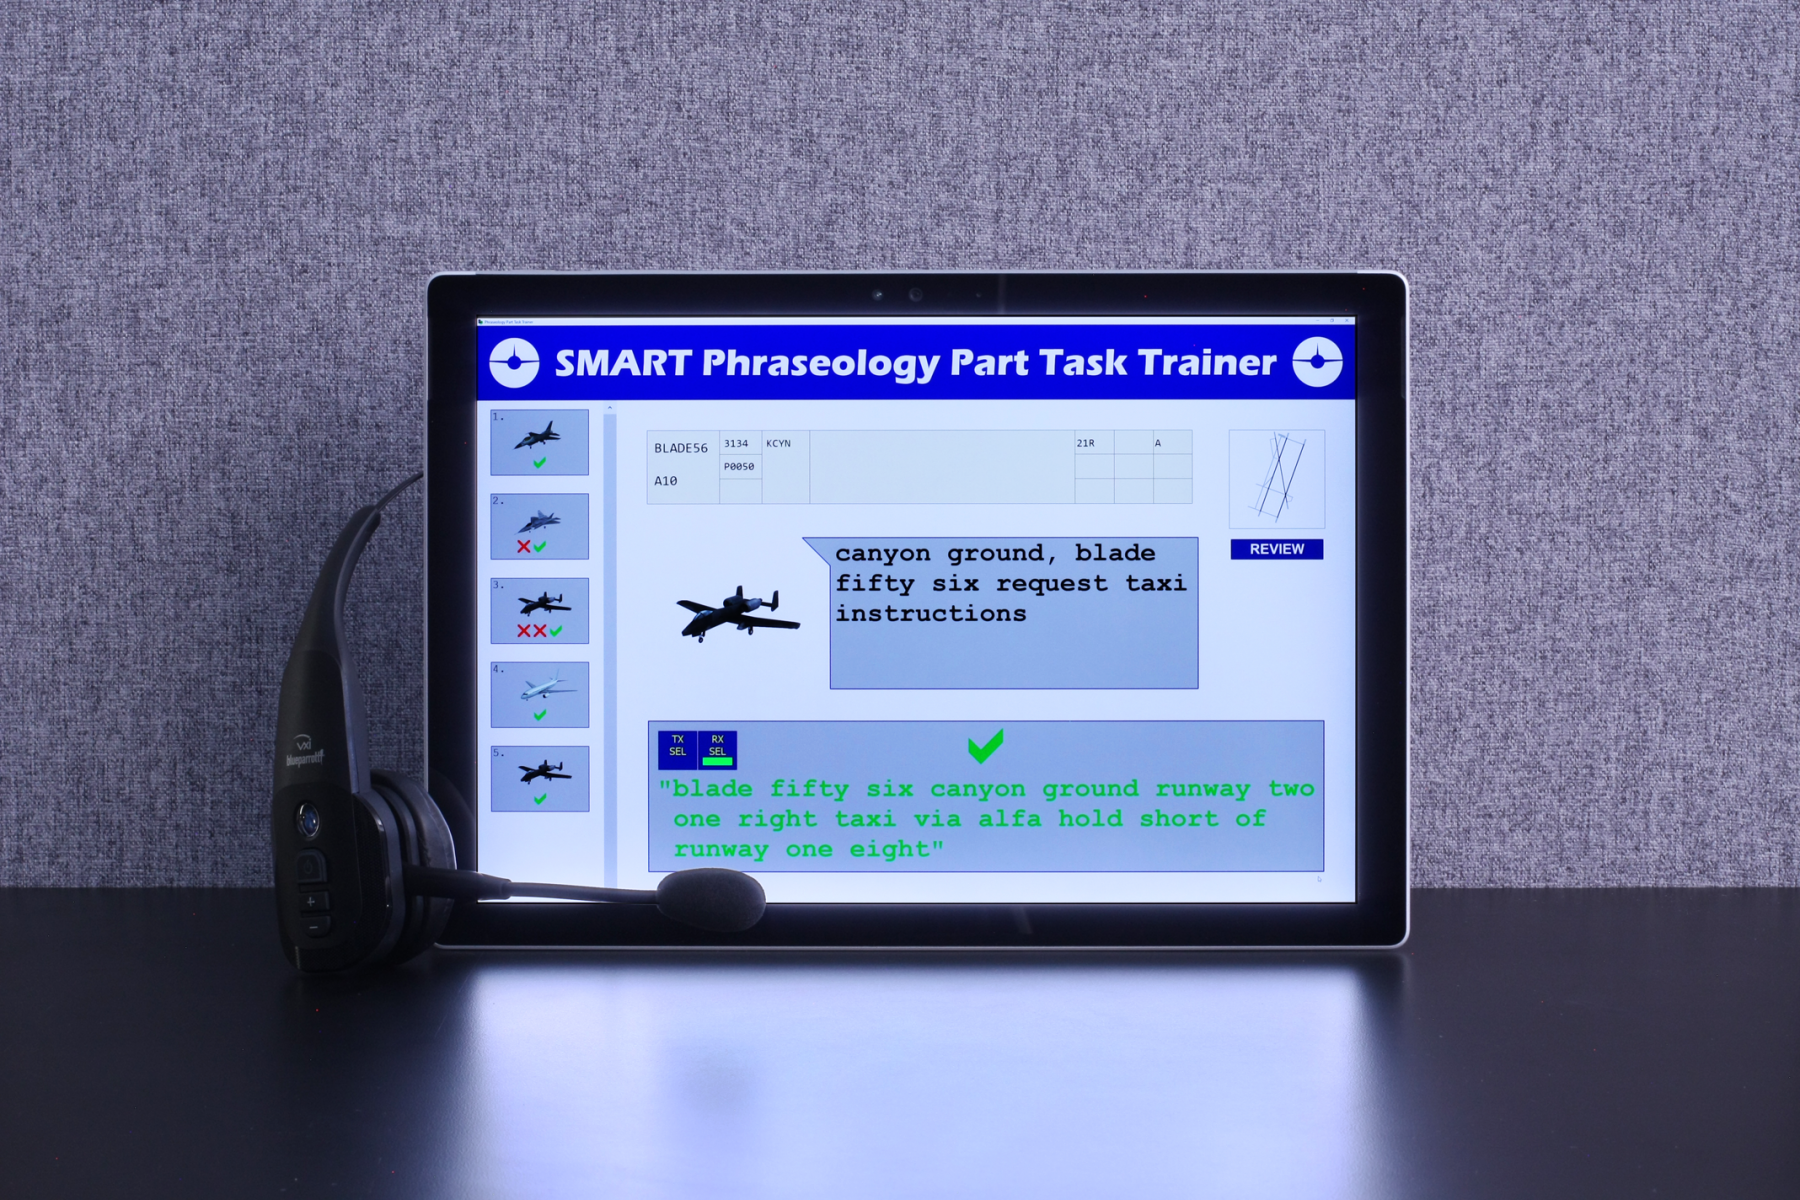 SMART Part Task Trainer - Phraseology Trainer